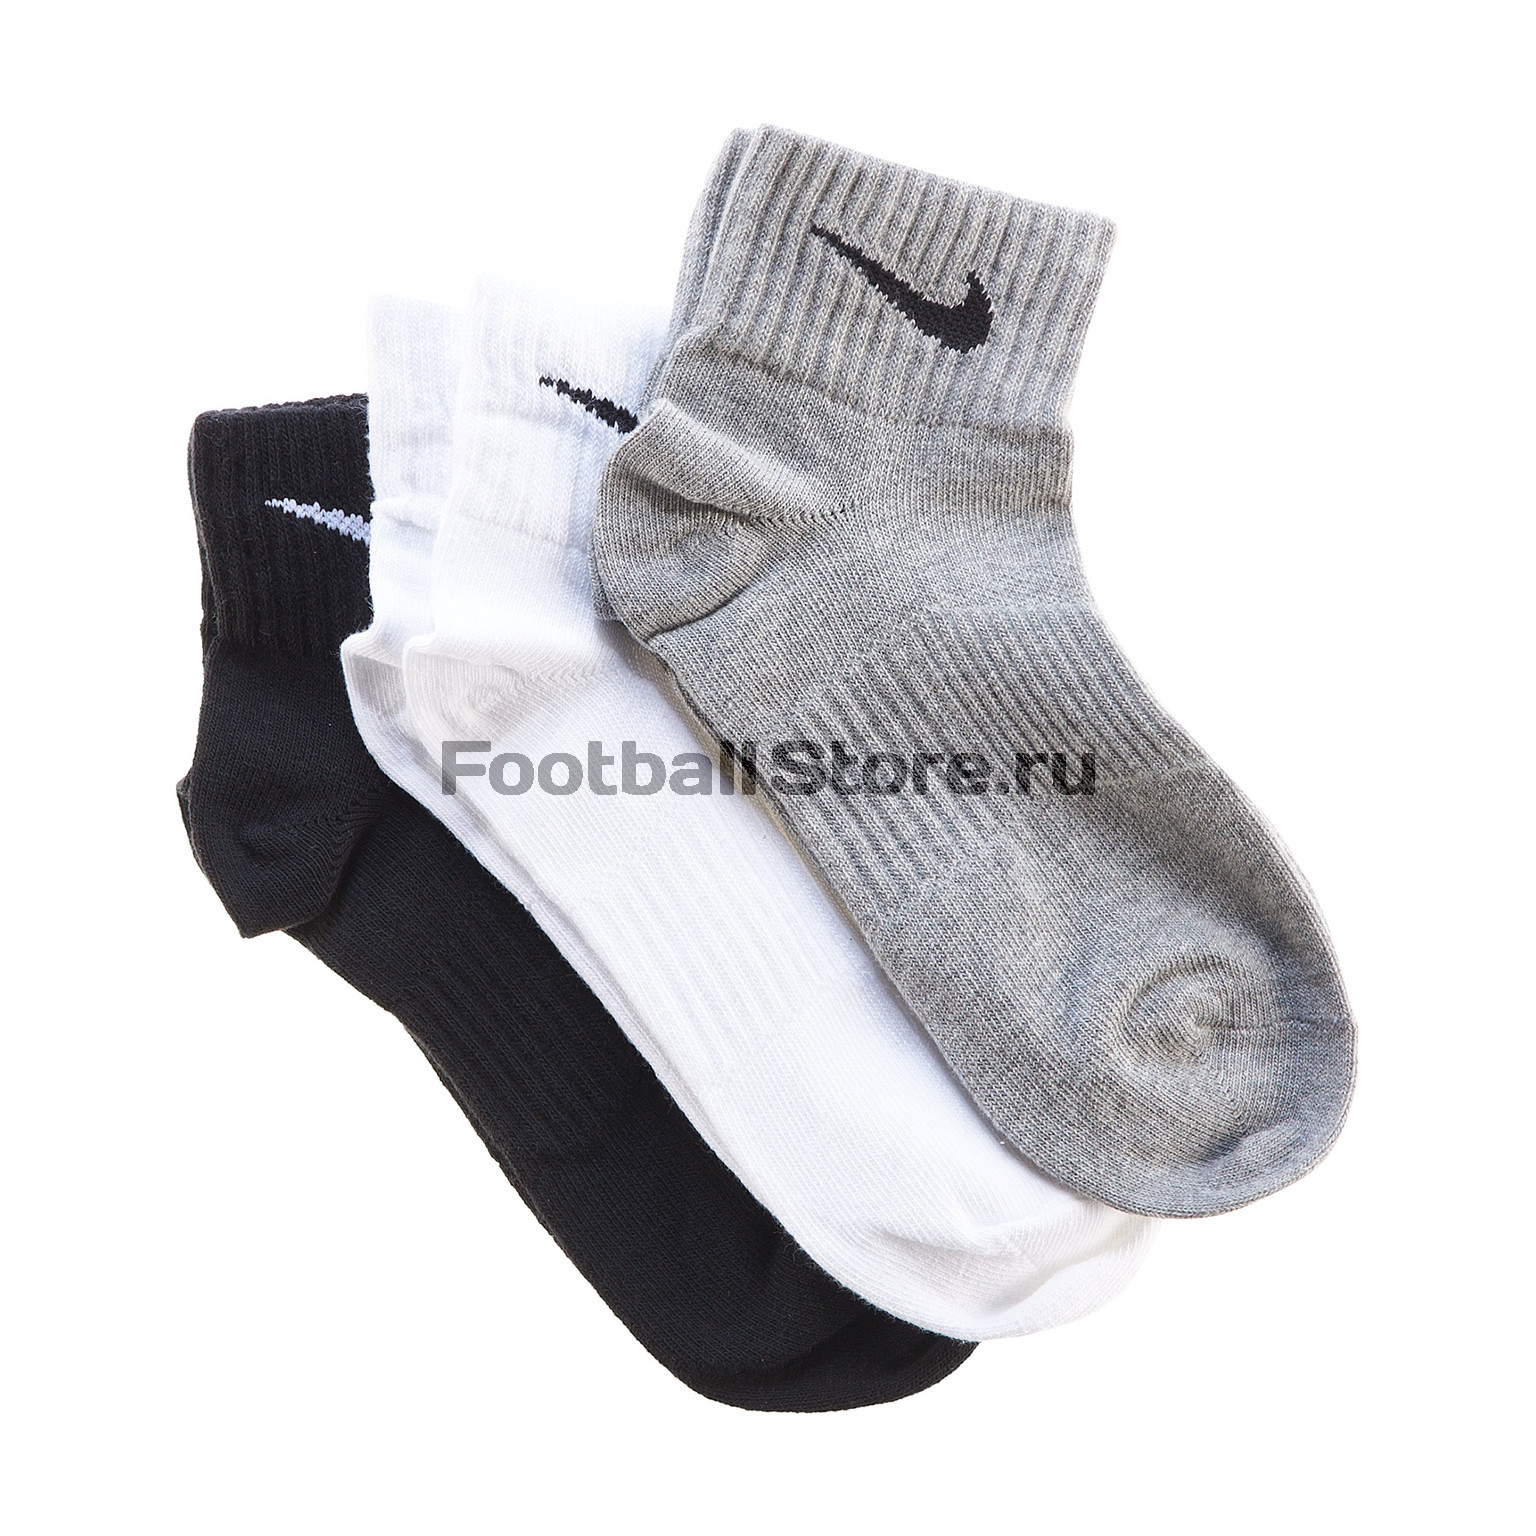 Комплект носков Nike 3ppk lightweight quarter комплект носков nike 3ppk cushion quarter sx4703 901